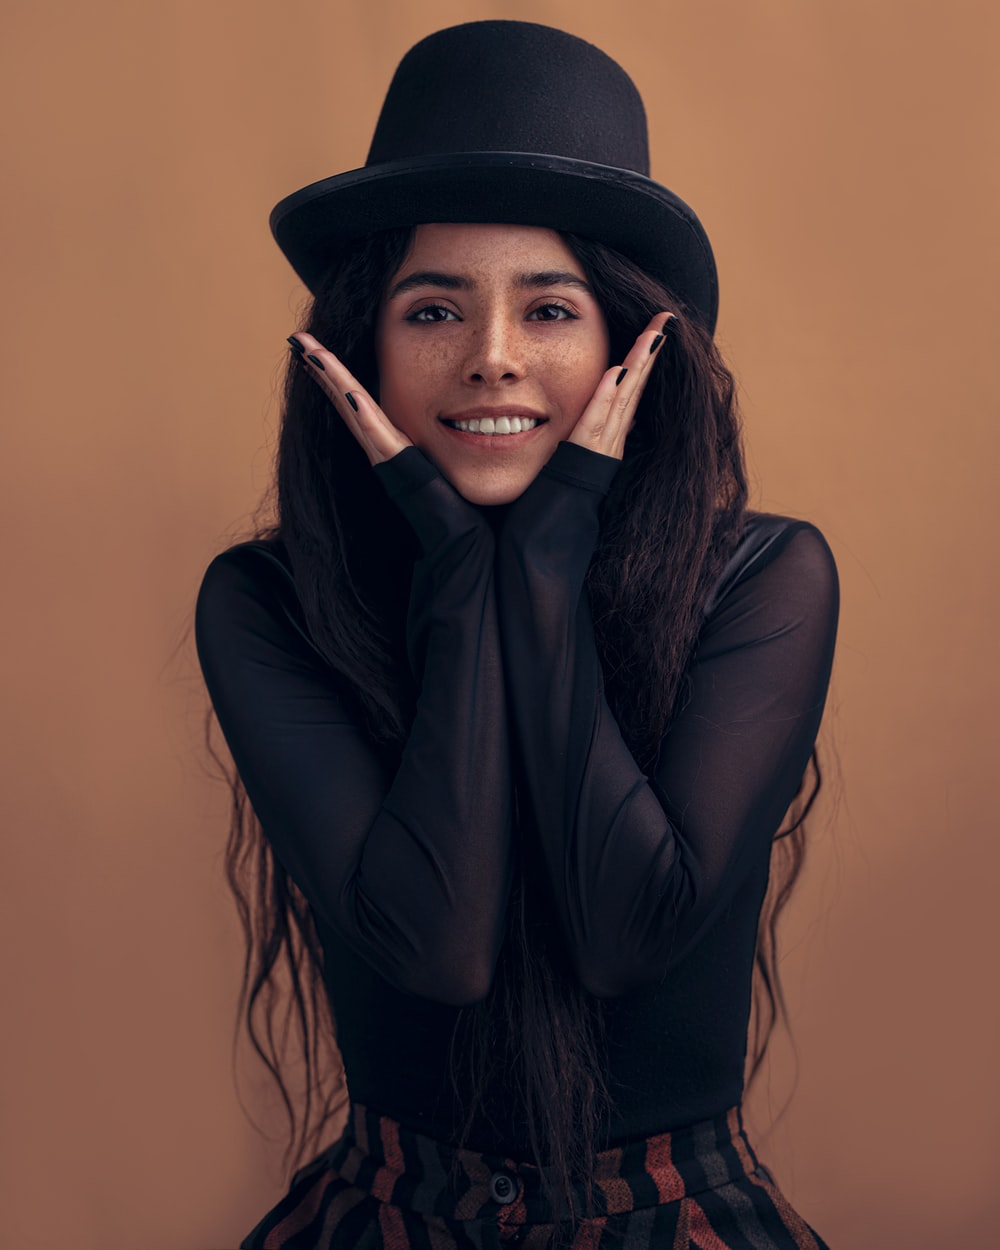 woman in black long sleeve shirt and black hat